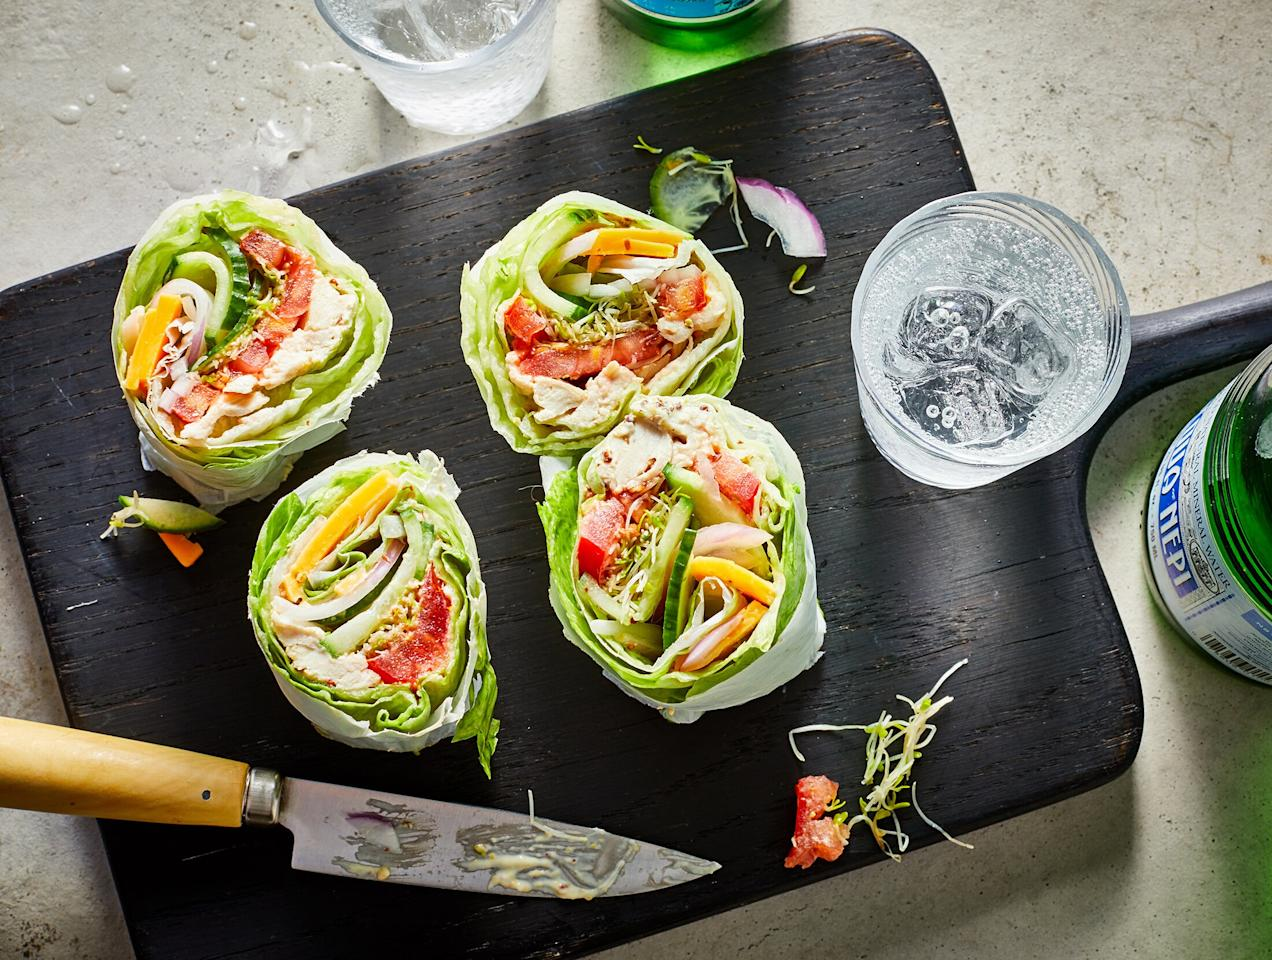 "<p>This fresh, crunchy wrap sandwich is brimming with vegetables, yet still delivers a satisfying amount of protein thanks to the chicken and cheese. Crisp iceberg lettuce is what keeps this wrap sandwich ultra low in carbs (just 4 grams per serving). The hardest part of this 10-minute recipe is rolling the sandwich, but our parchment paper trick makes it infinitely simpler.</p> <p> <a href=""https://www.cookinglight.com/recipes/low-carb-chicken-and-cheddar-lettuce-wraps"">View Recipe: Low-Carb Chicken and Cheddar Lettuce Wraps</a></p>"